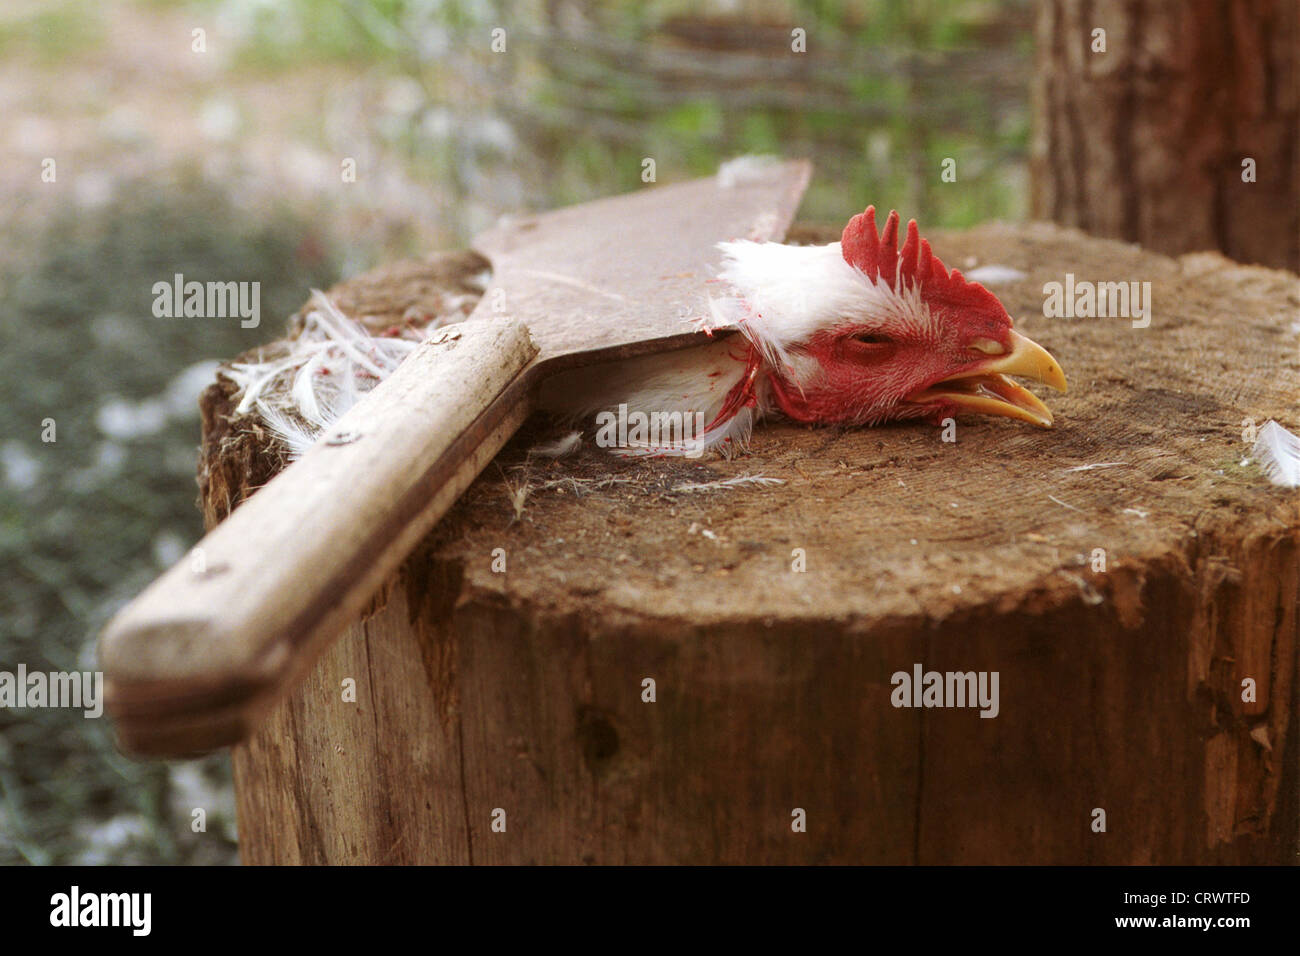 Representative photo of a slaughtered chicken - Stock Image